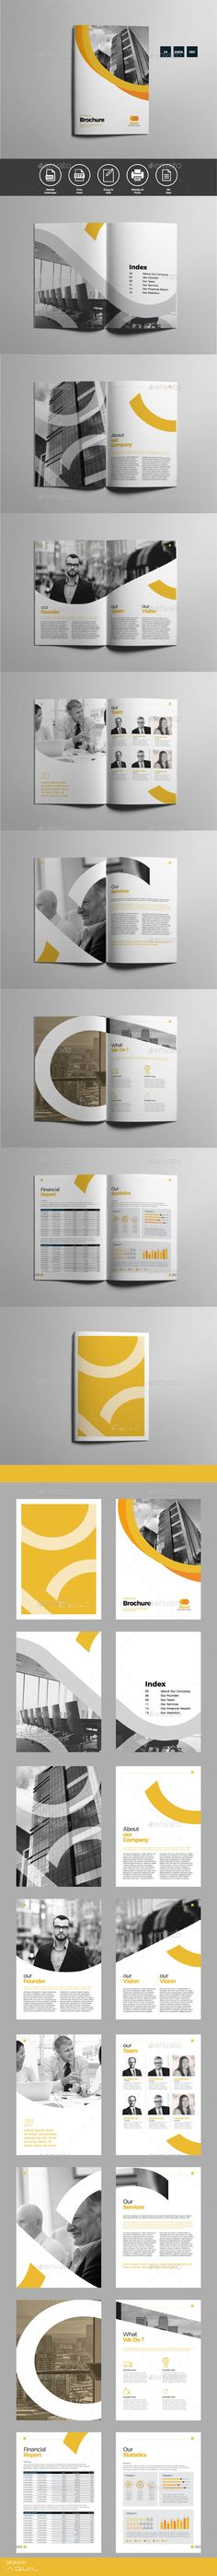 Brochure Template InDesign INDD - 16 Unique Pages